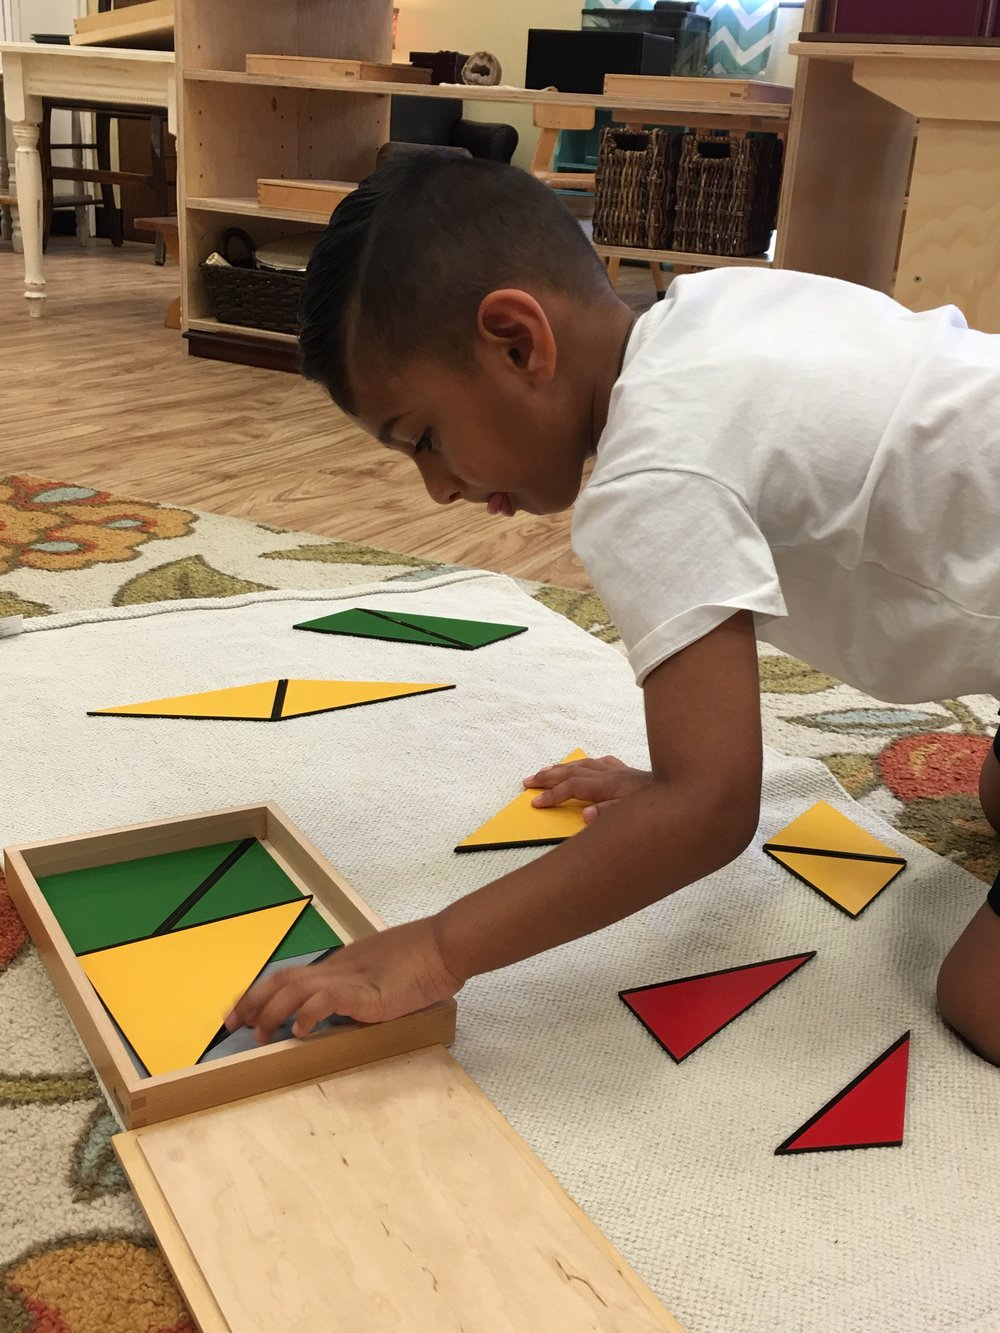 A child working with the rectangular box